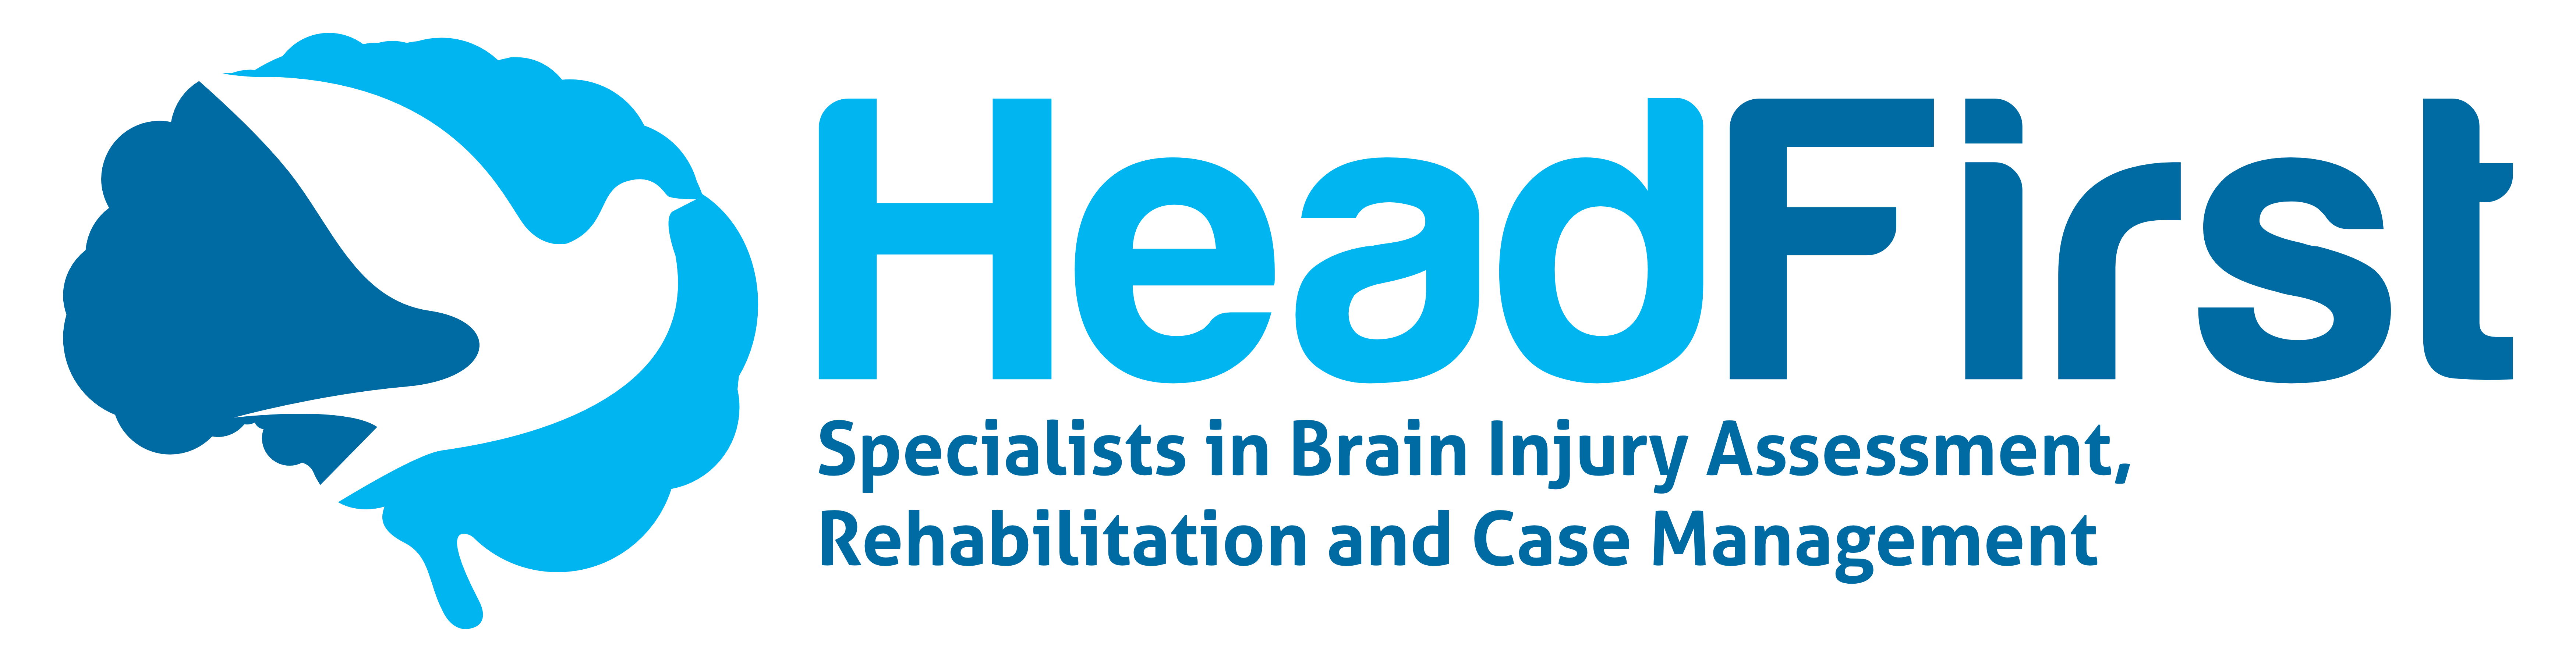 Head First, Specialists in Brain Injury Assessment, Rehabilitation and Case Management